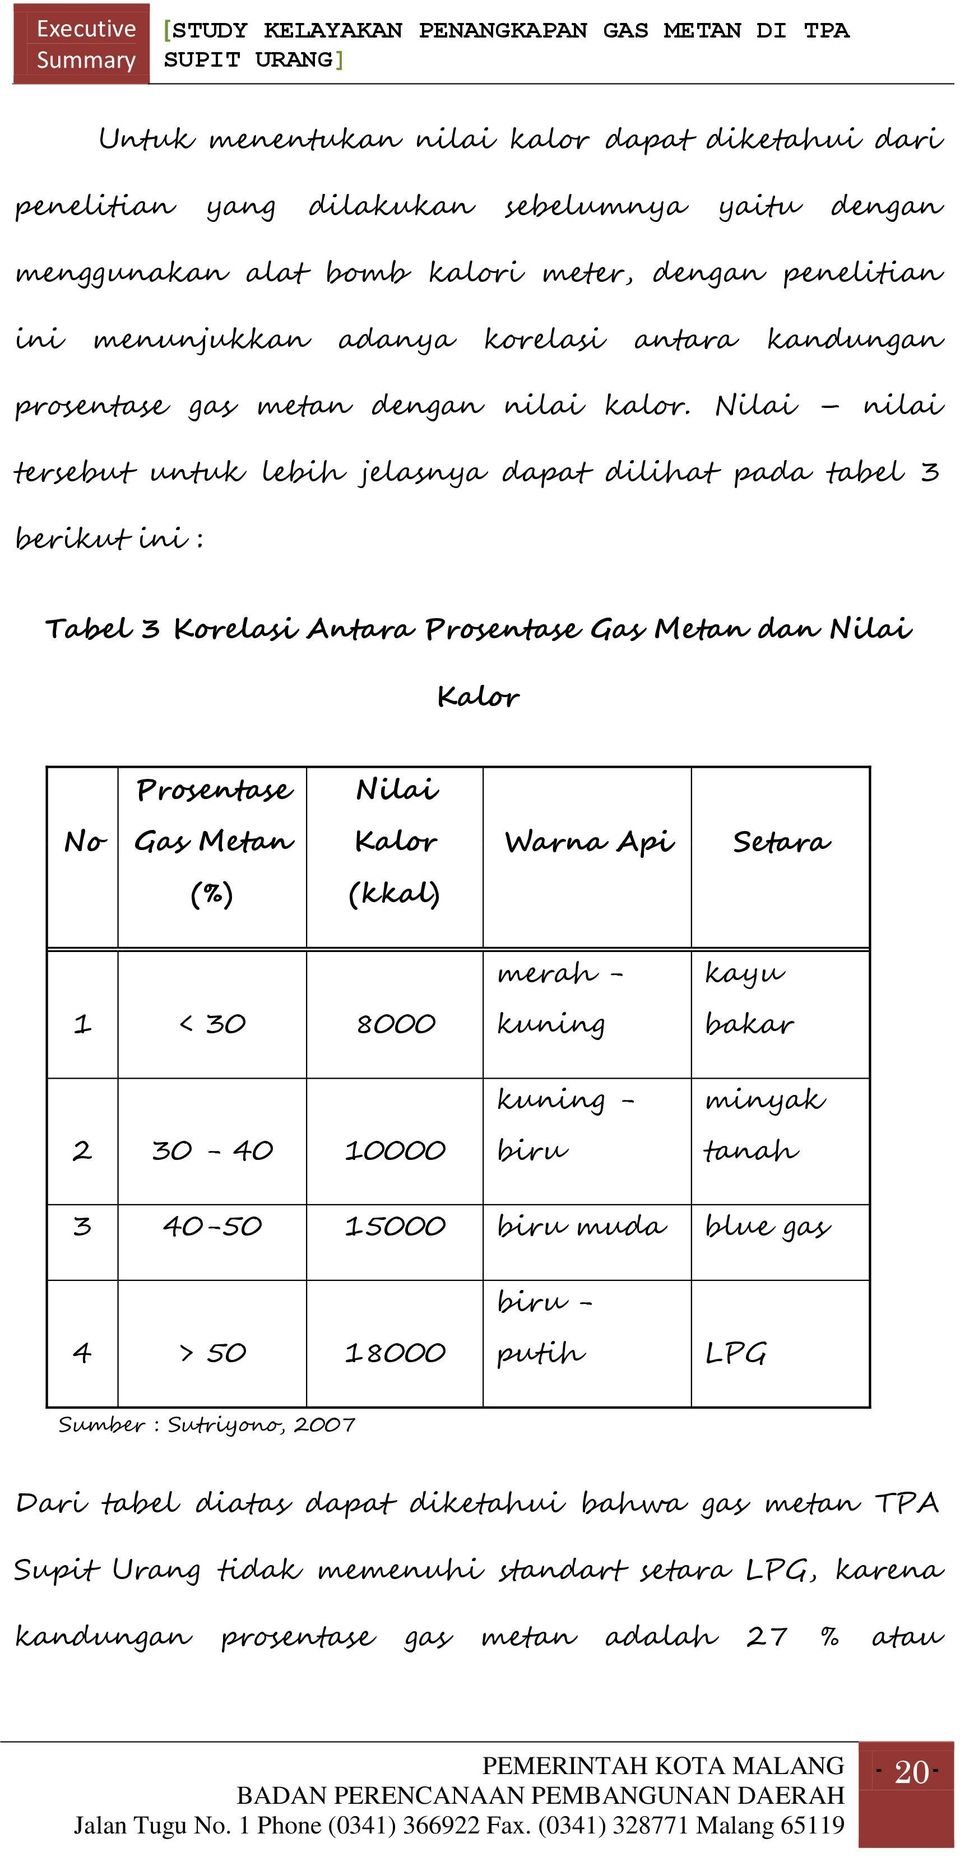 Nilai nilai tersebut untuk lebih jelasnya dapat dilihat pada tabel 3 berikut ini : Tabel 3 Korelasi Antara Prosentase Gas Metan dan Nilai Kalor Prosentase Nilai No Gas Metan Kalor Warna Api